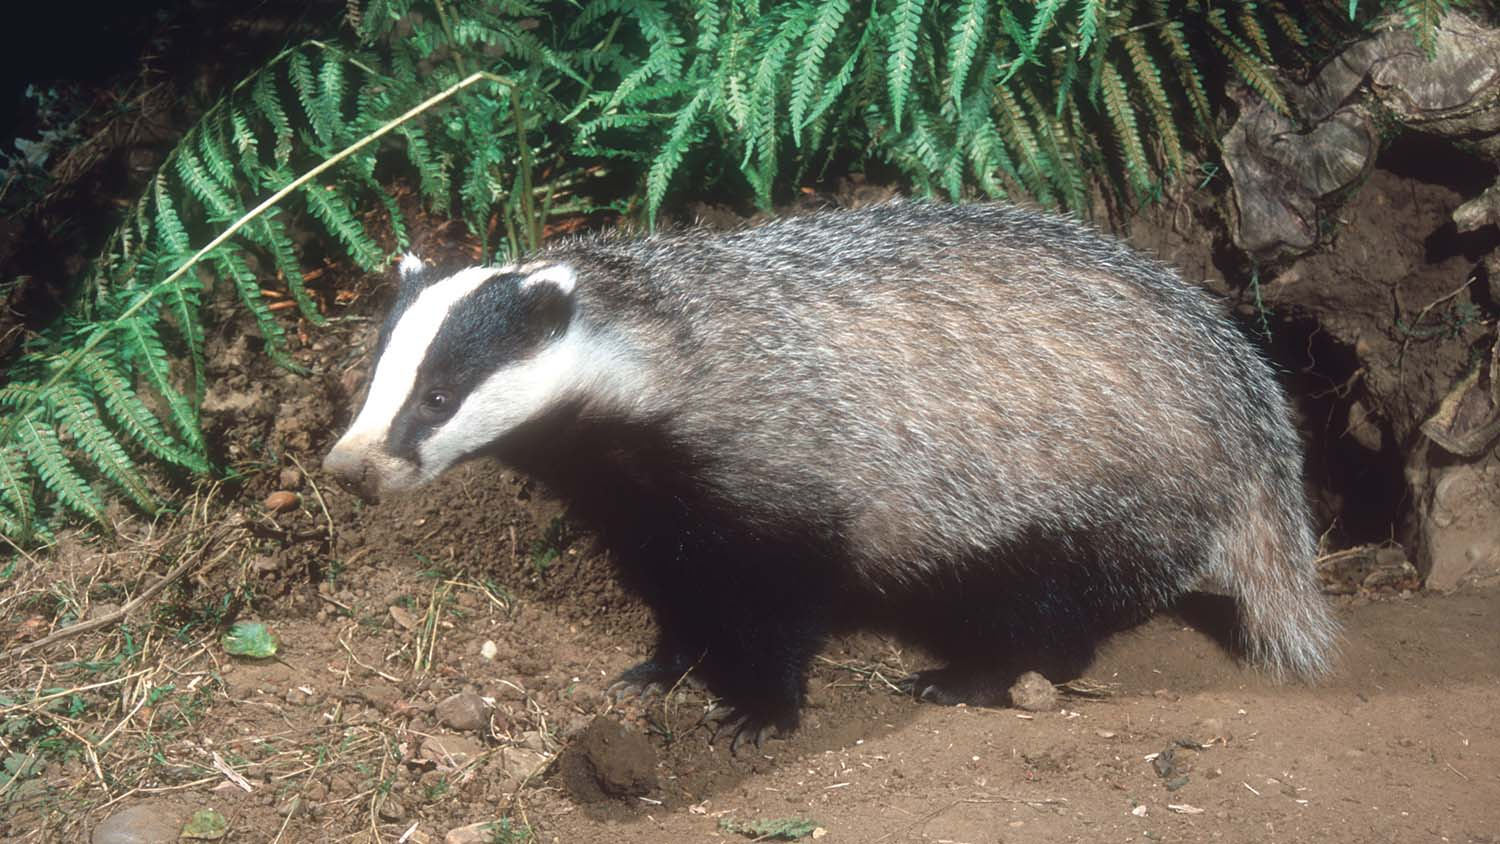 Badgers and cattle rarely have direct contact, says study